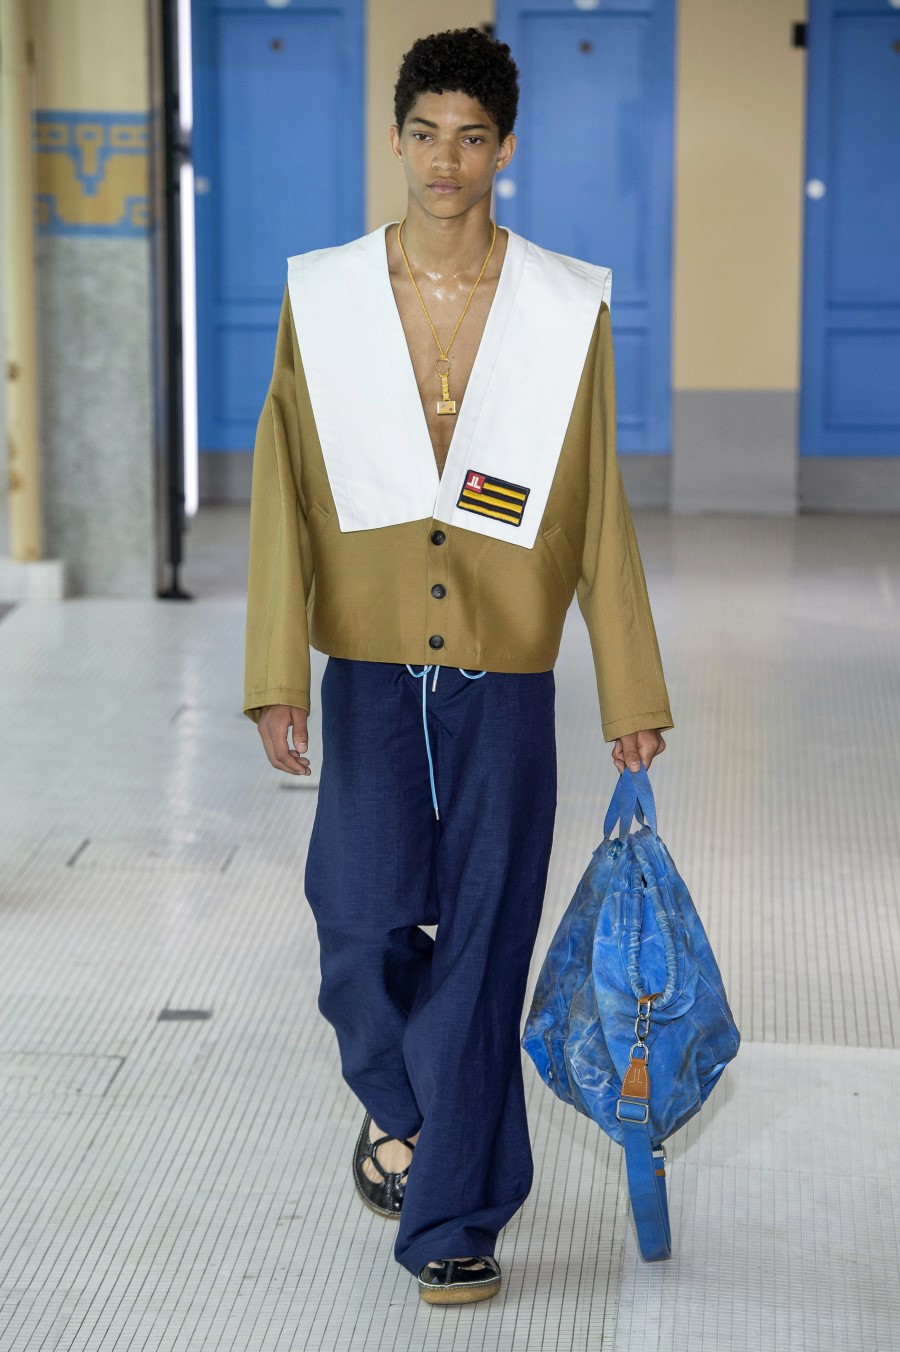 Lanvin - Printemps-Été 2020 - Paris Fashion Week